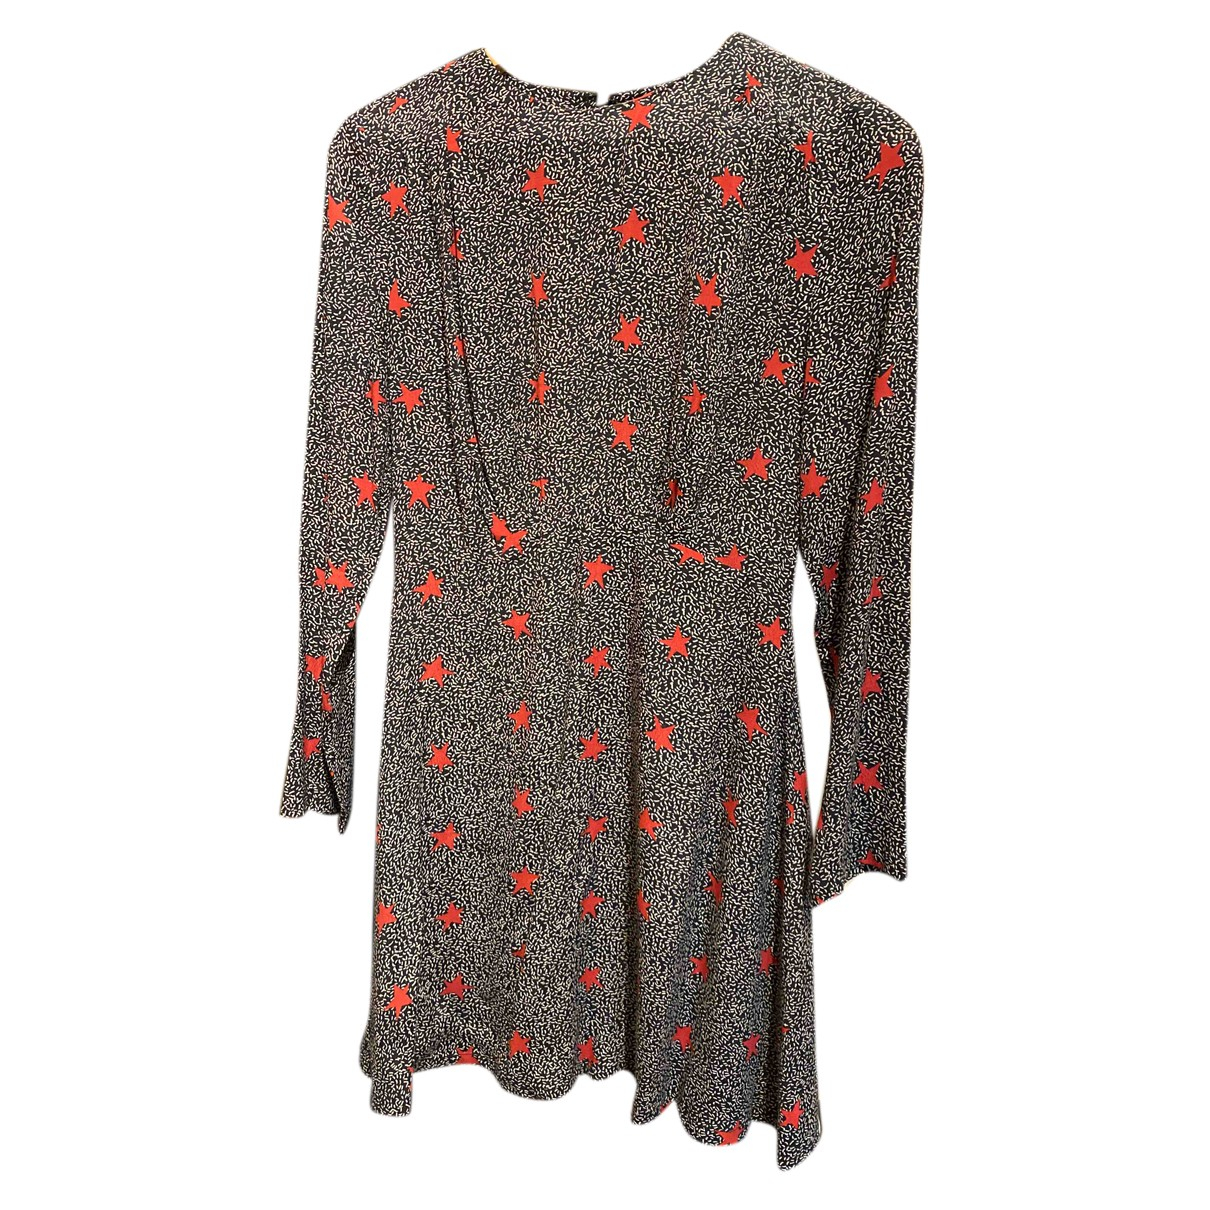 & Other Stories \N Kleid in  Bunt Polyester